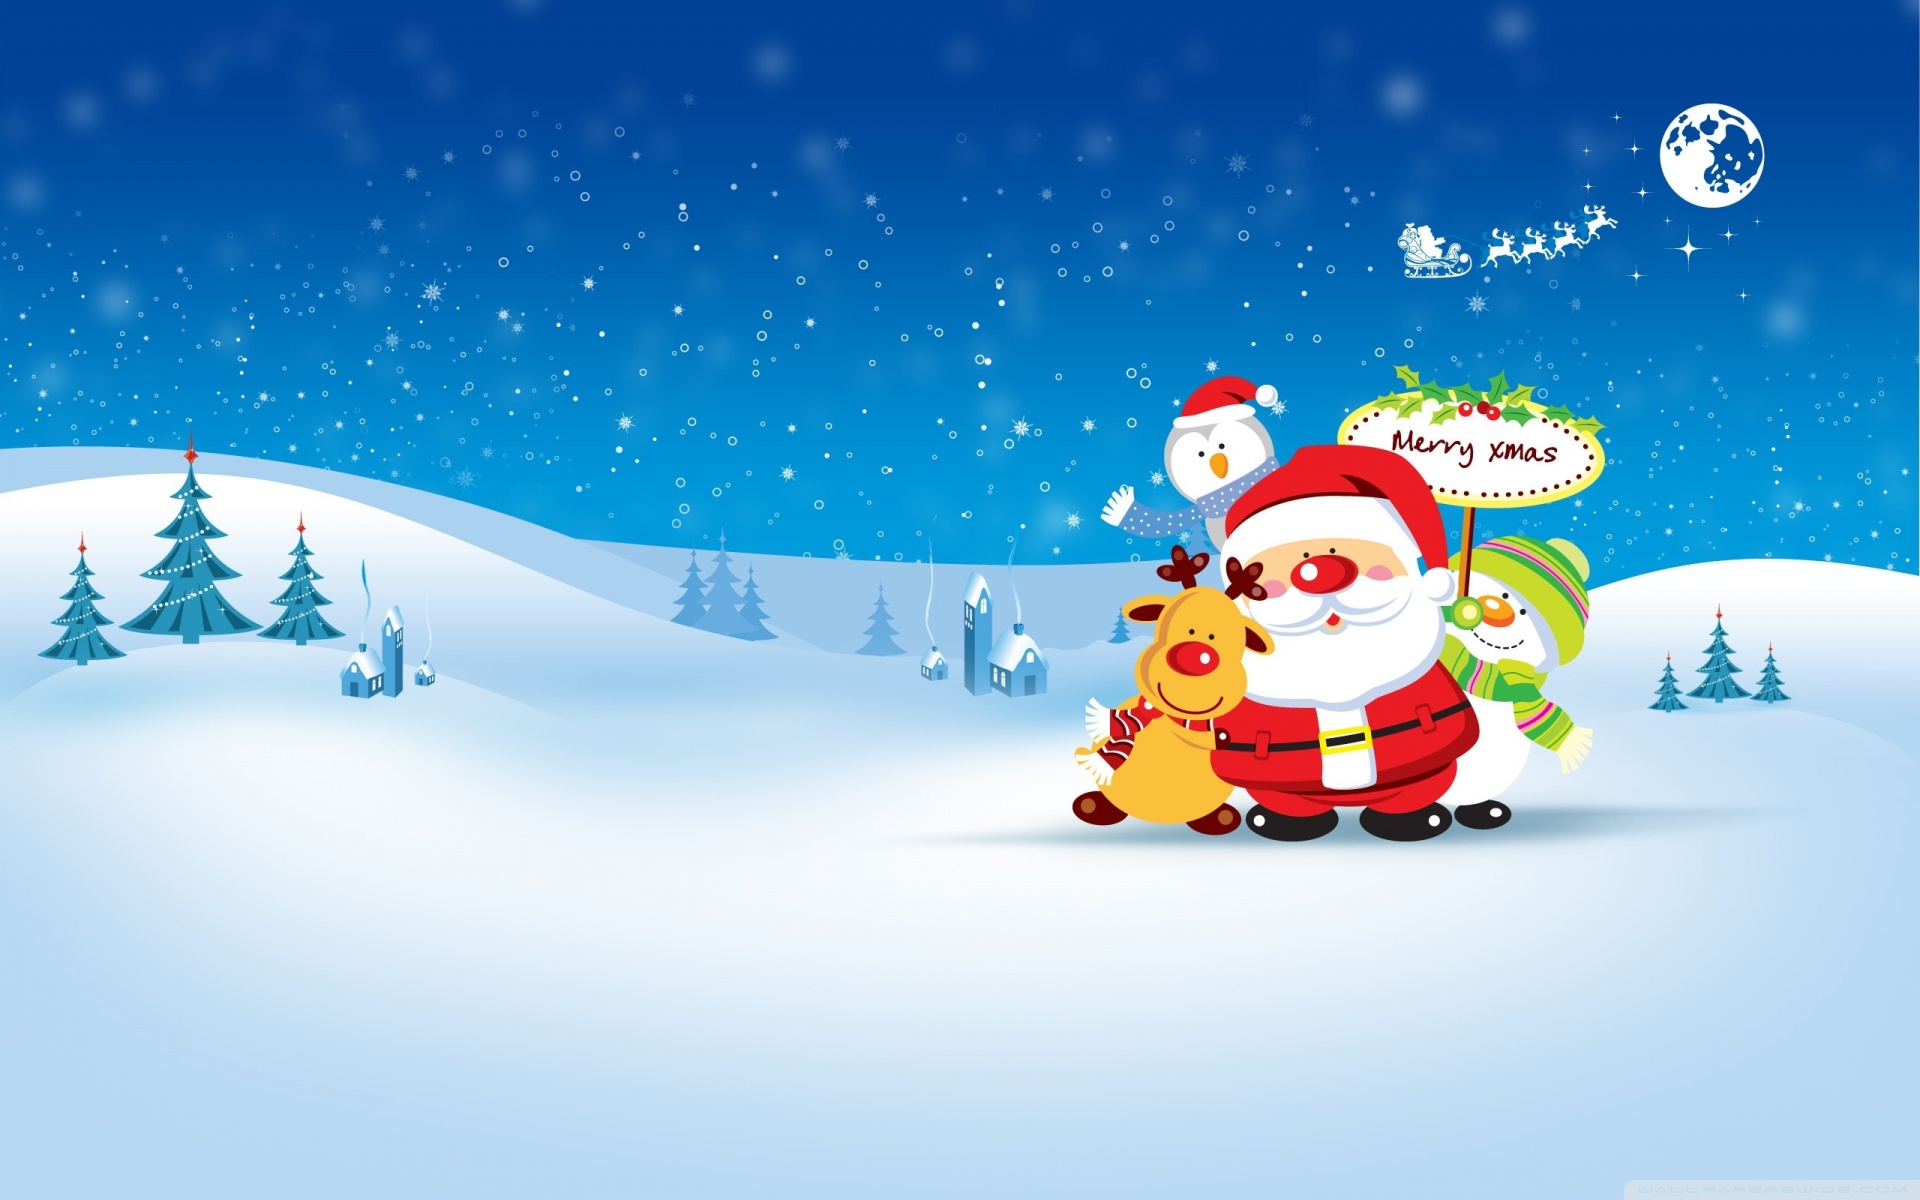 HO HO HO Merry Christmas computer desktop wallpaper 1920x1200